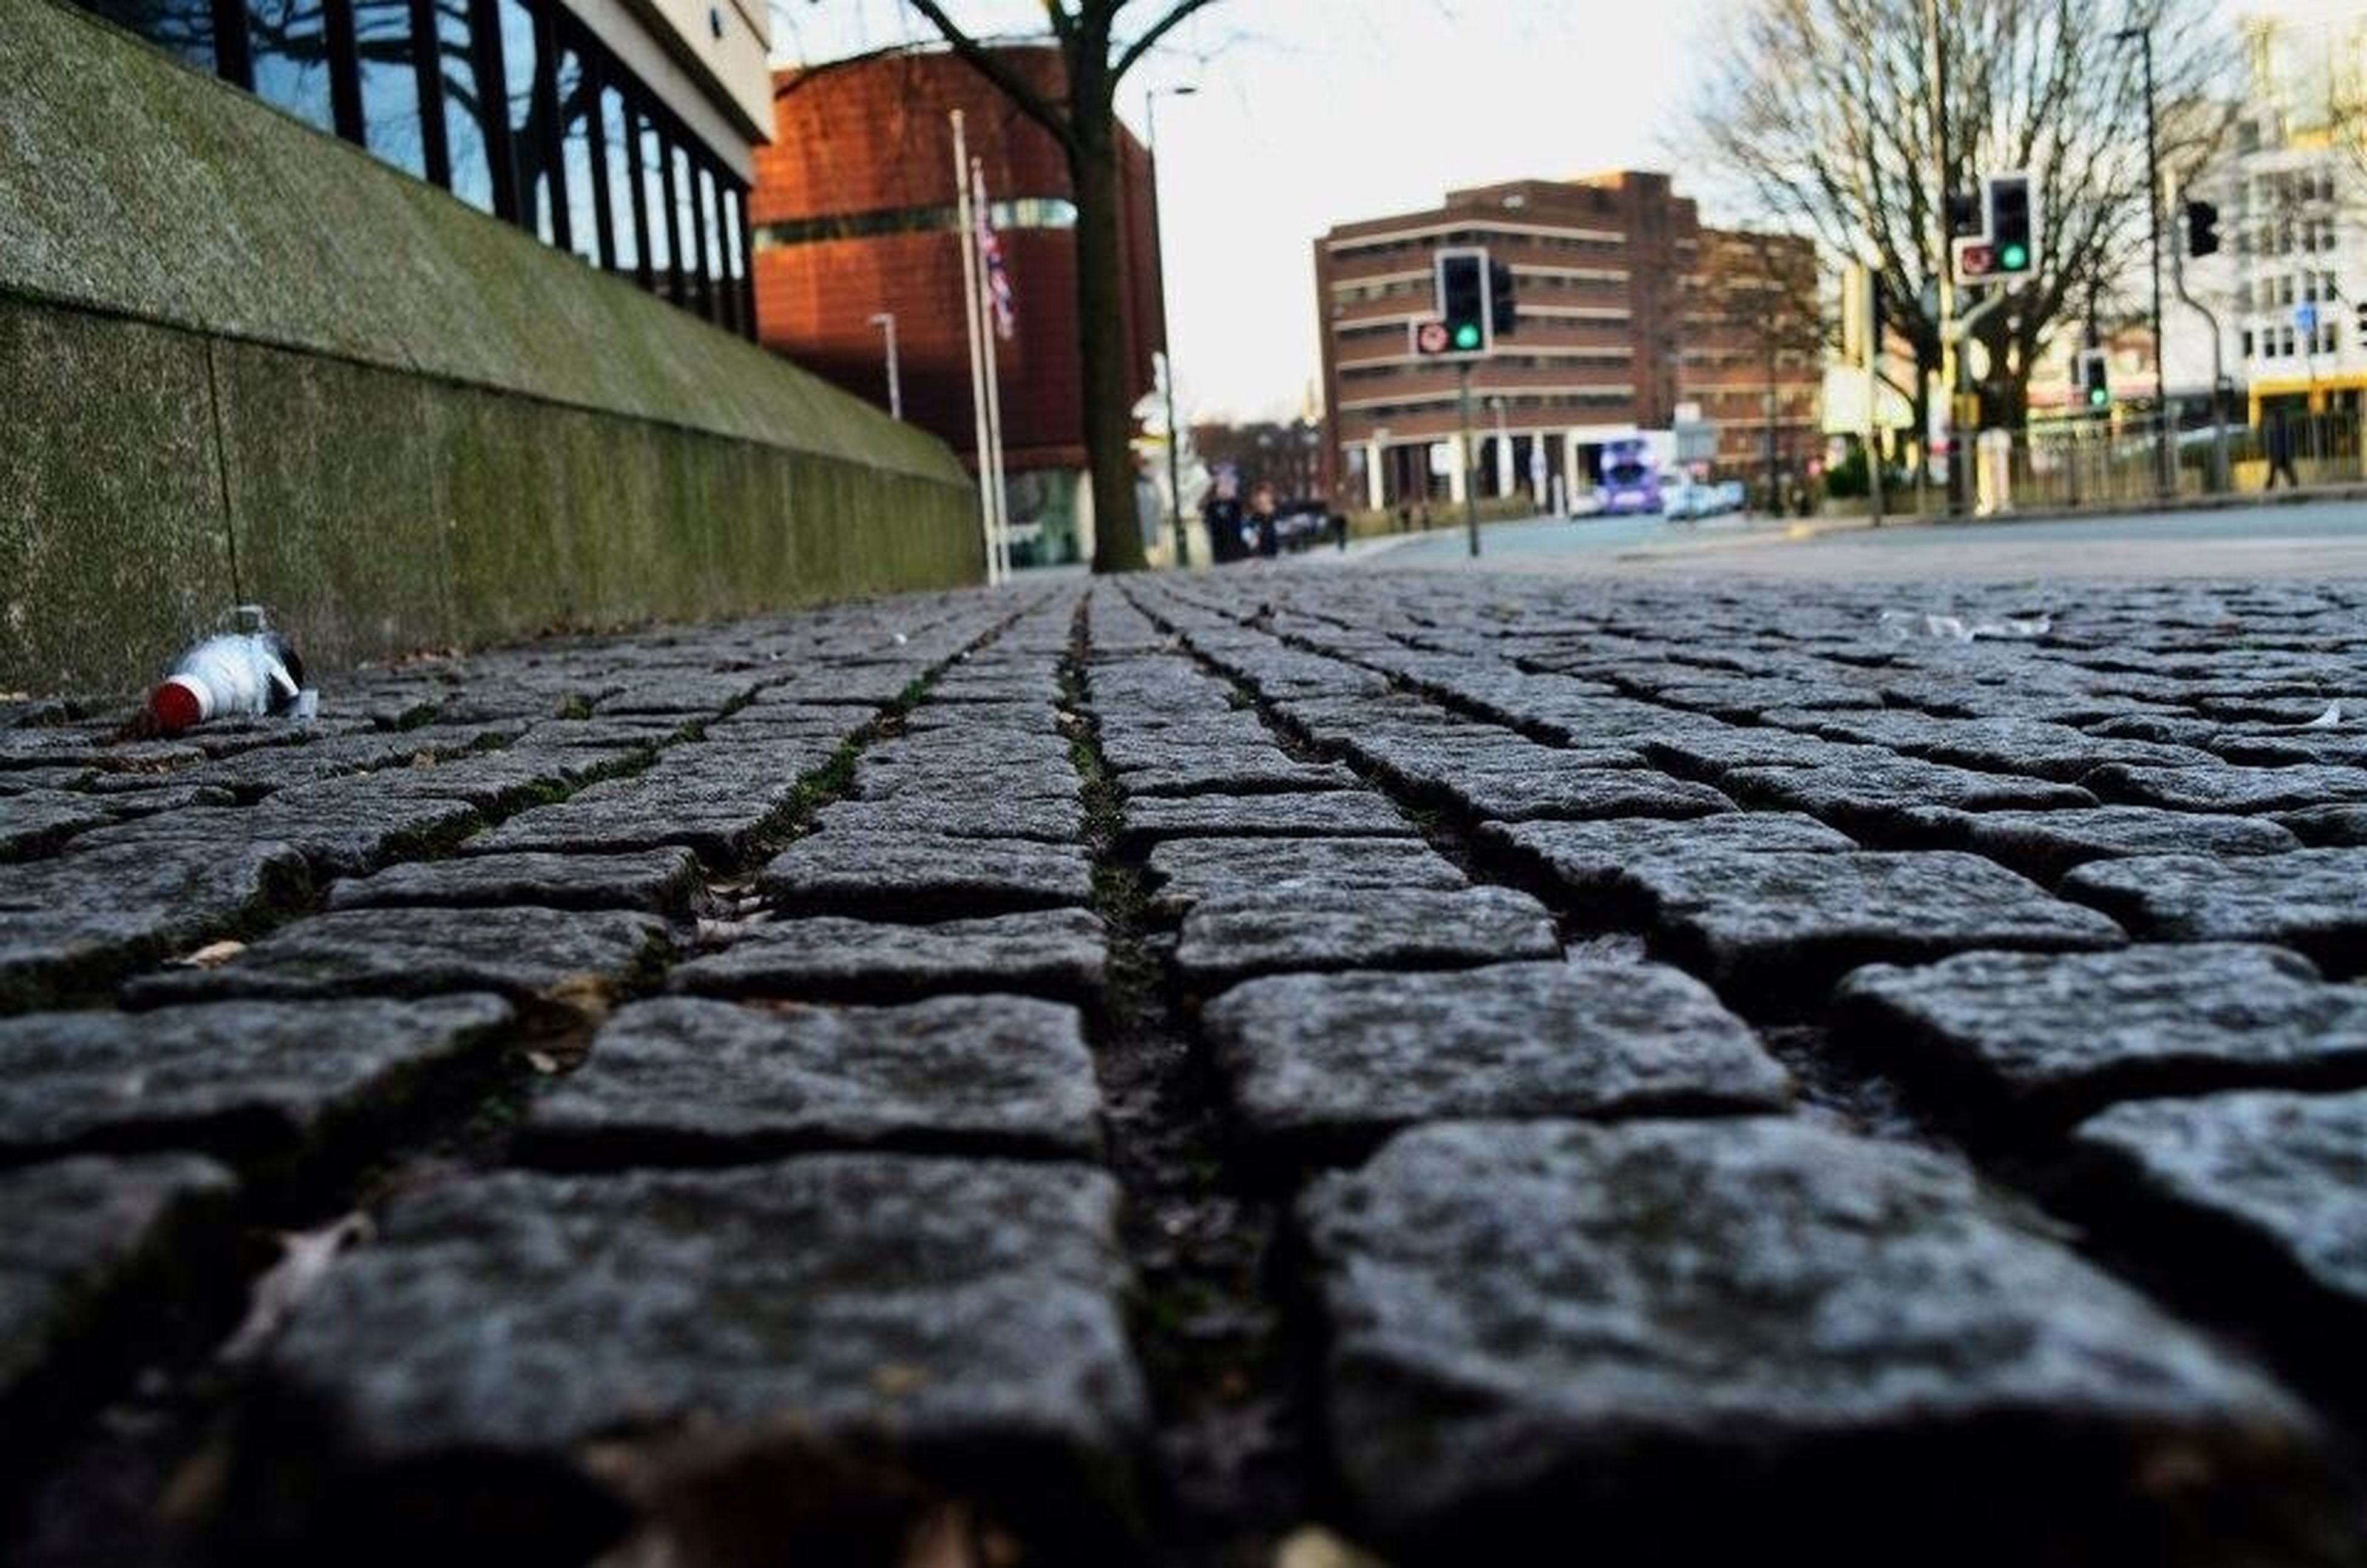 building exterior, architecture, built structure, the way forward, cobblestone, street, house, city, diminishing perspective, residential structure, bird, residential building, surface level, animal themes, walkway, walking, footpath, building, day, one animal